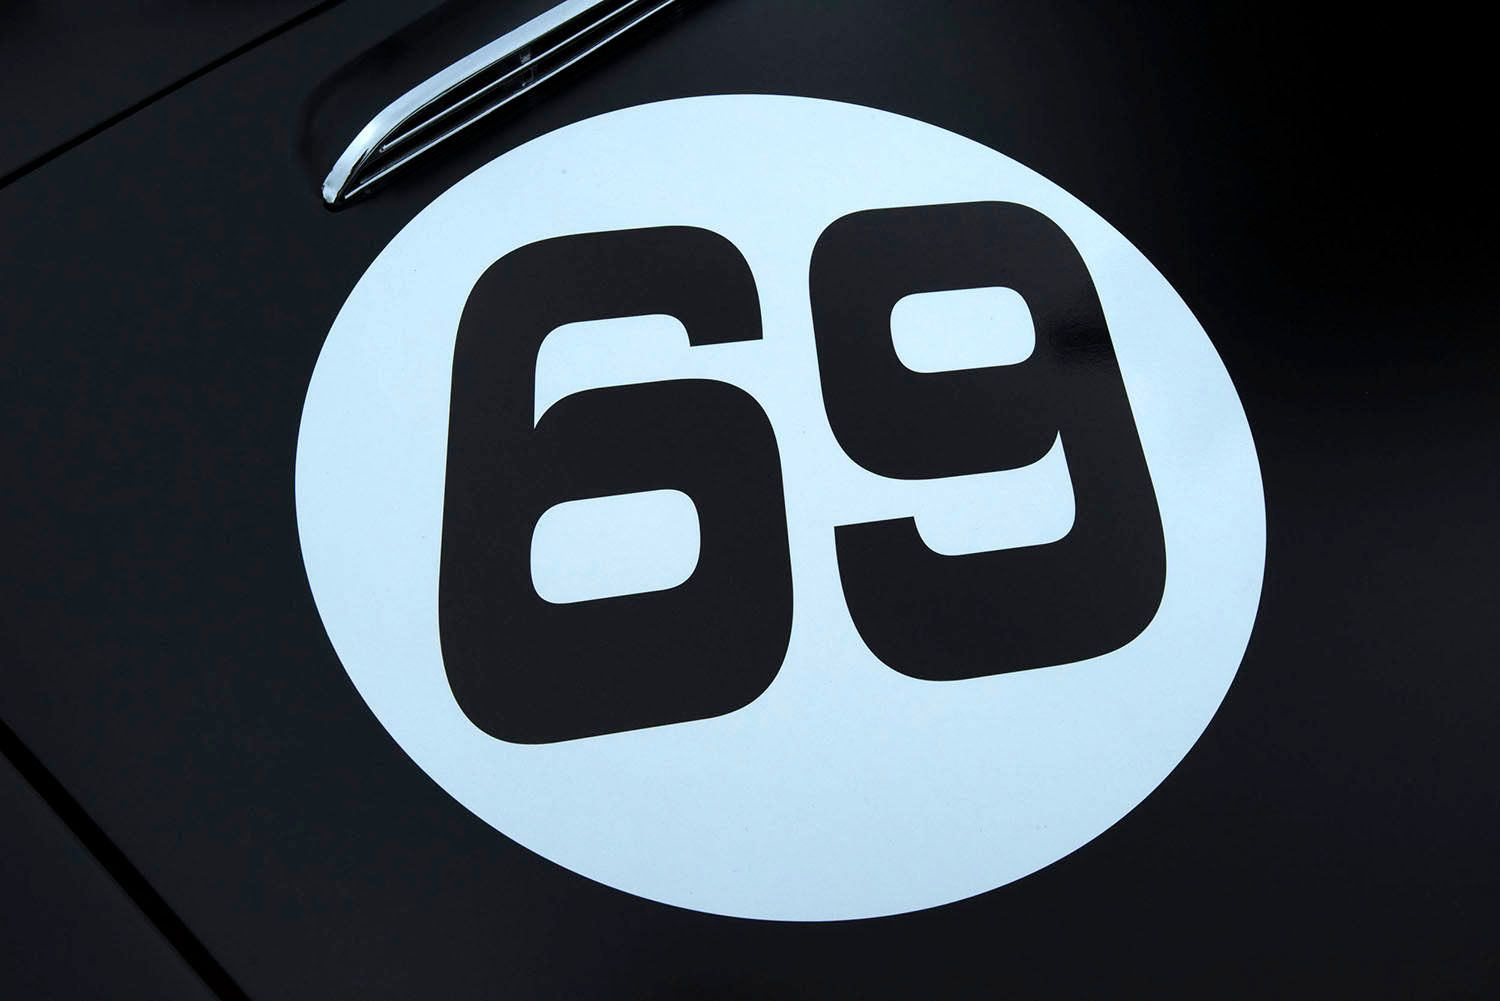 Number 69 Rally Car